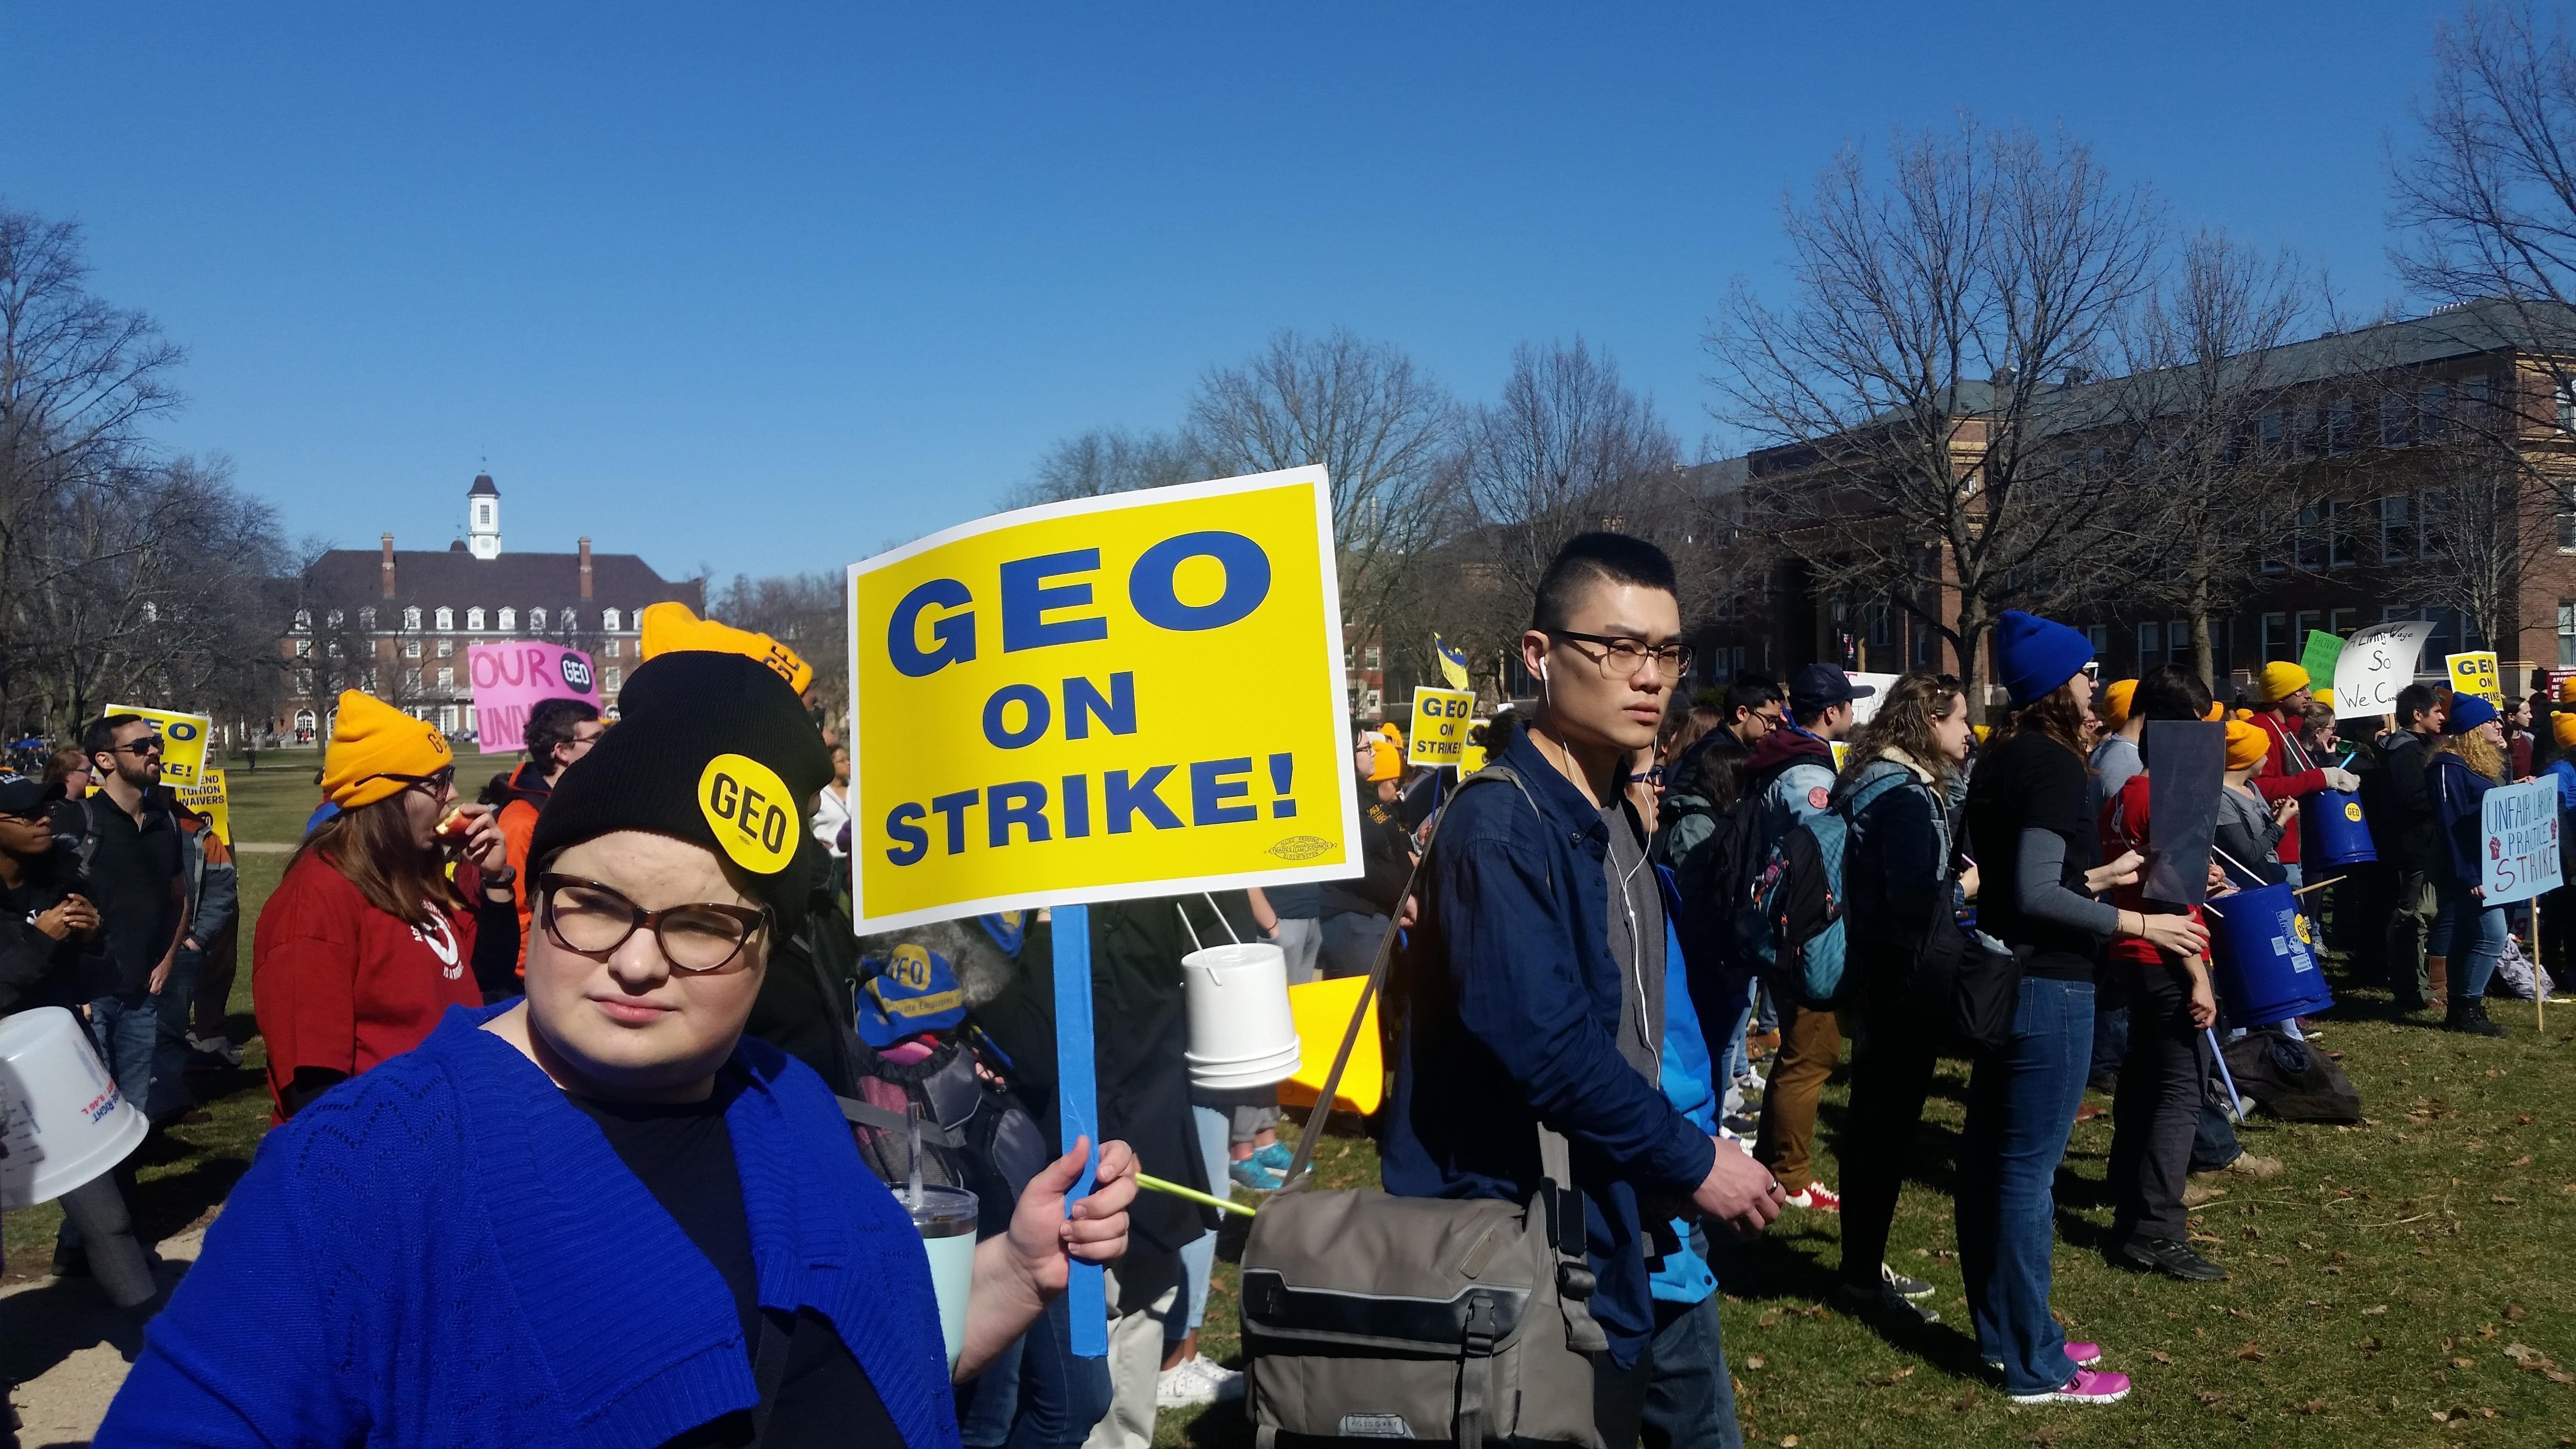 Hundreds of graduate student workers at the University of Illinois Urbana-Champaign campus rallied Feb. 26 as part of a strike by members of the graduate worker's union, the Graduate Employee Organization (GEO).